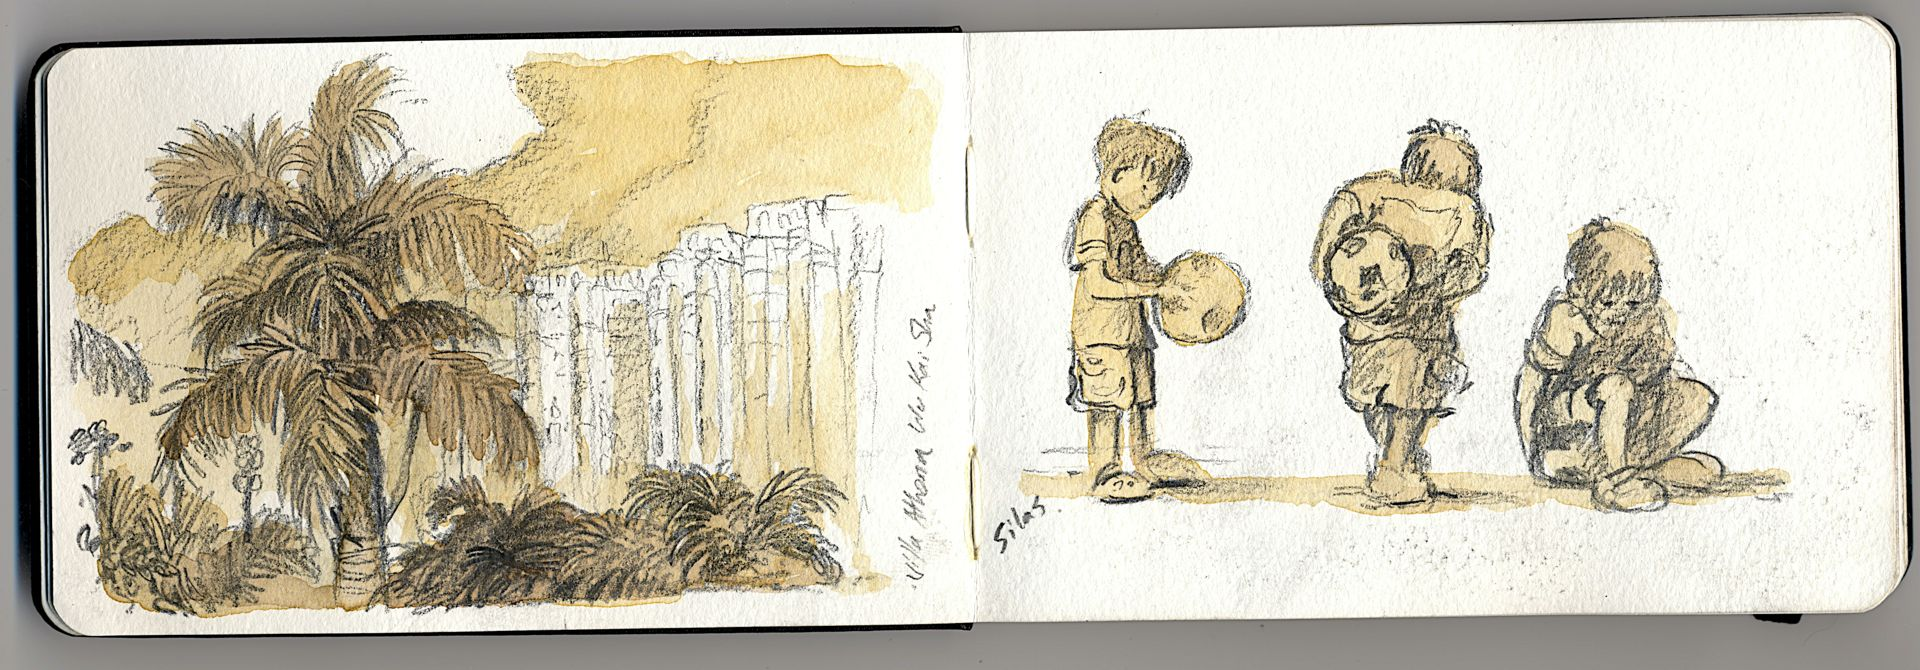 I hang out the beach, here in Hong Kong a lot with my boy.  He plays with his ball and digs in the sand. I draw.